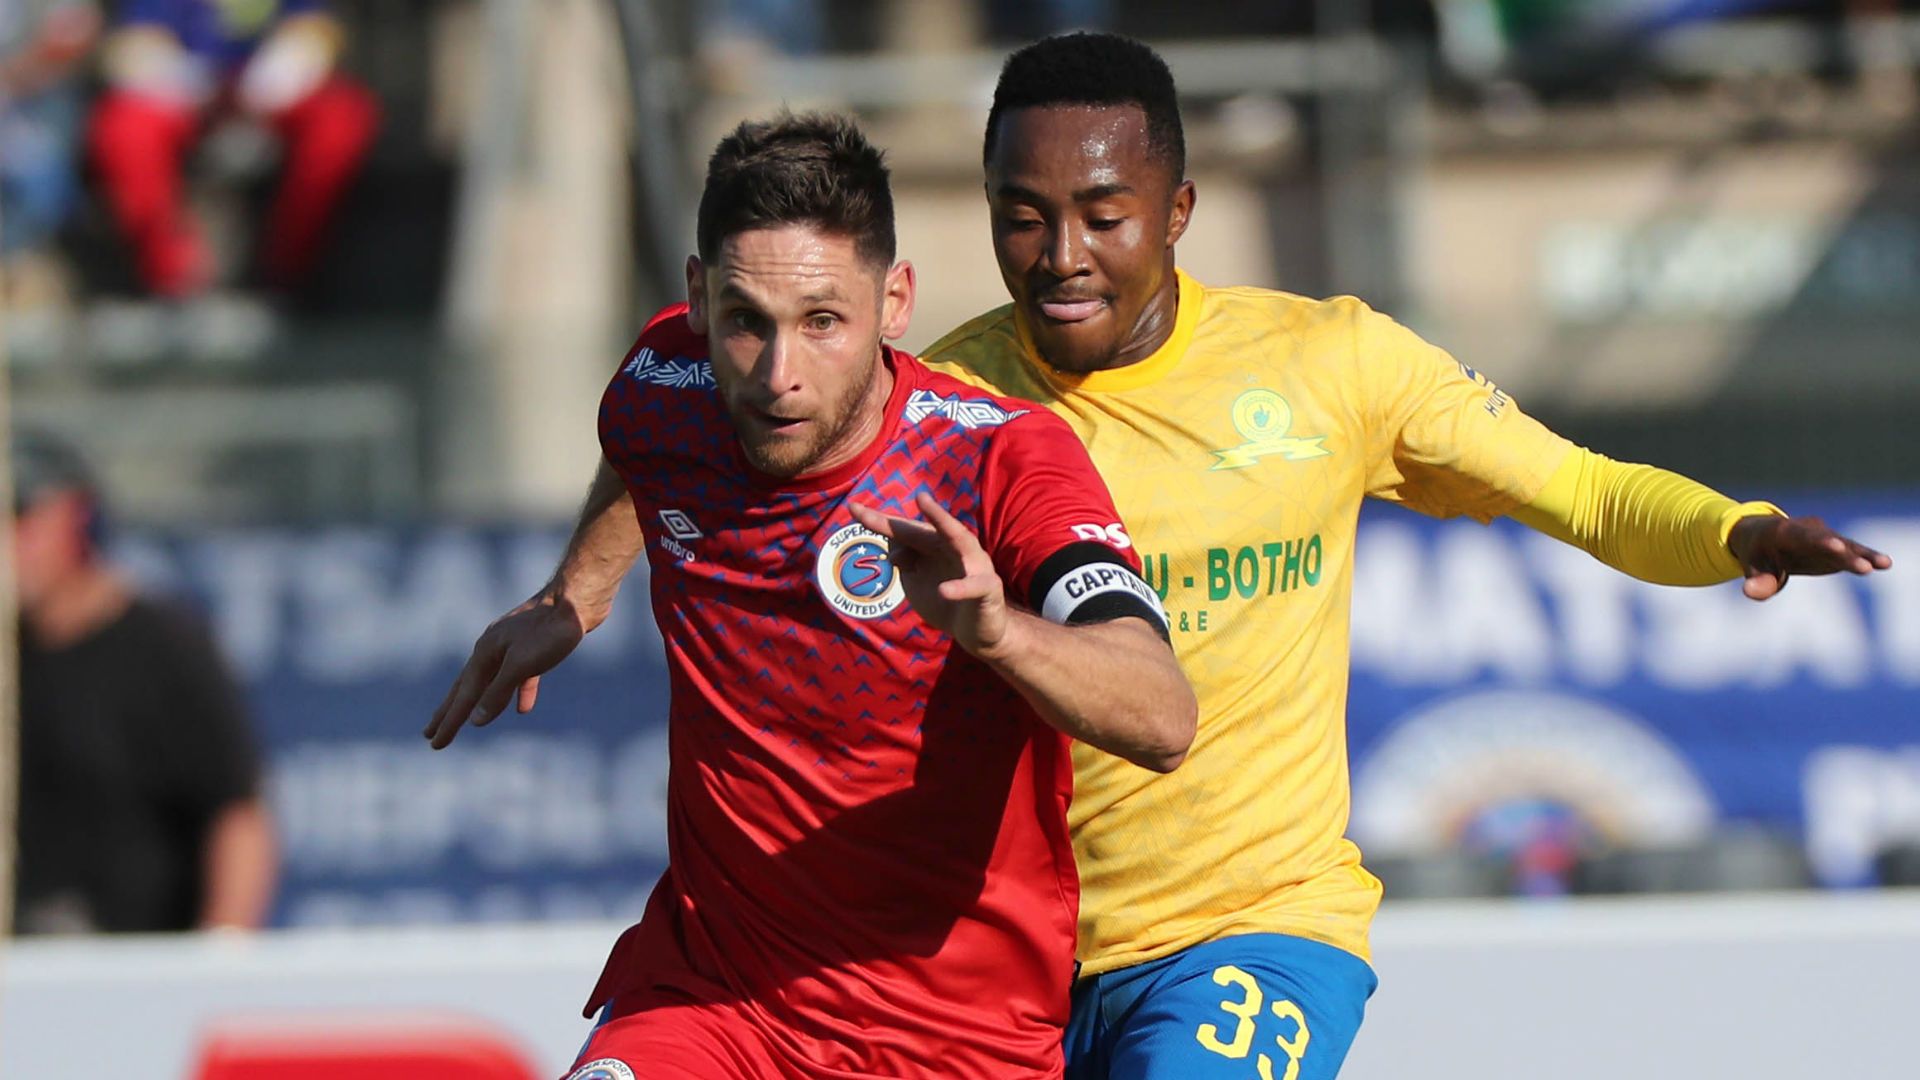 Bafana Bafana midfielder Furman on why he didn't become next Chelsea superstar